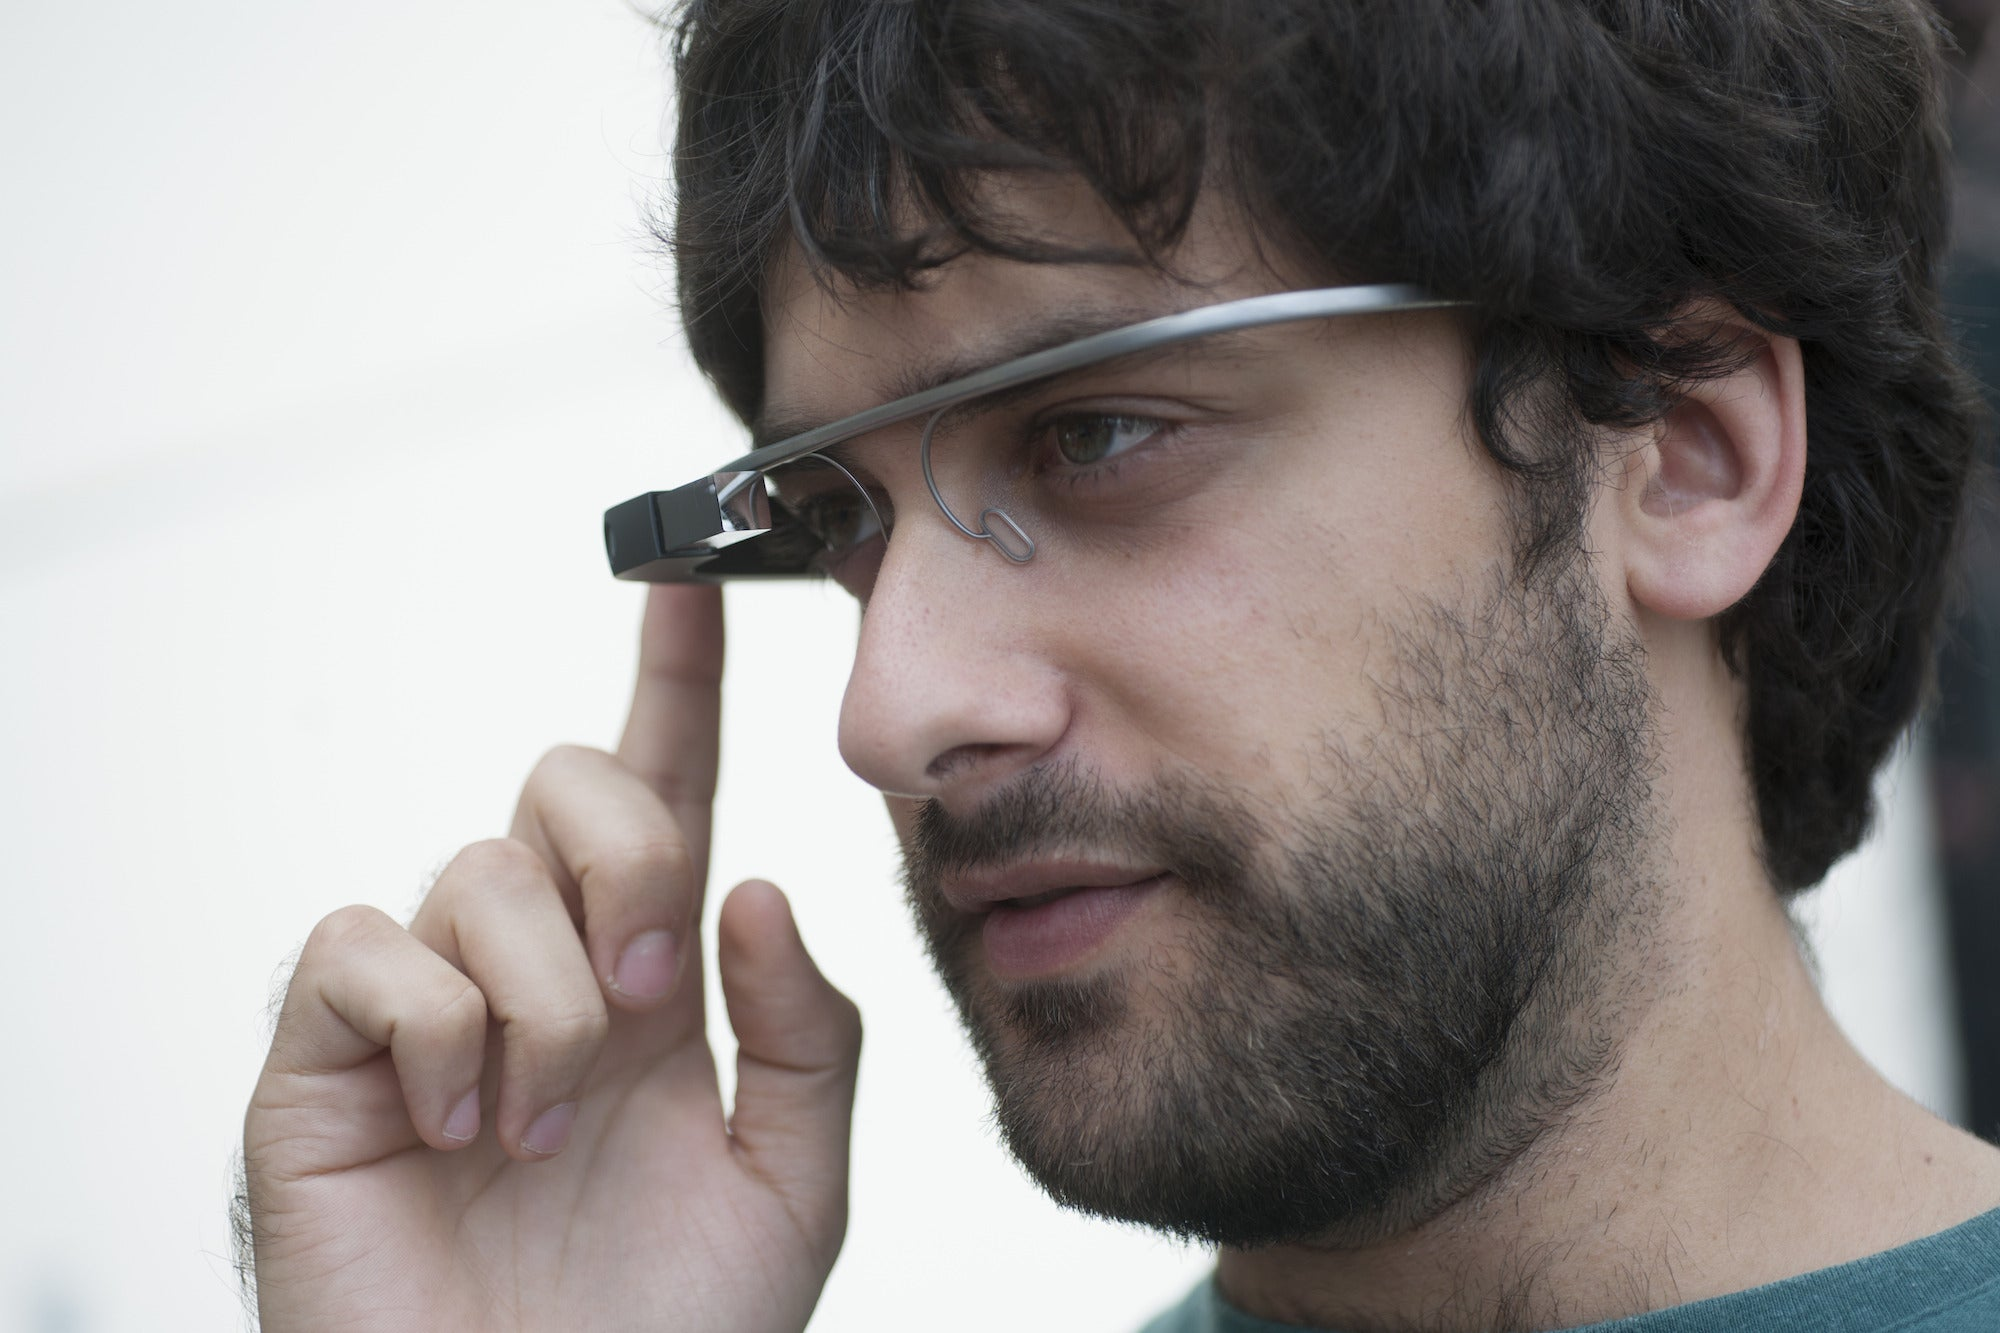 Android Wear apps already outnumber Google Glass apps